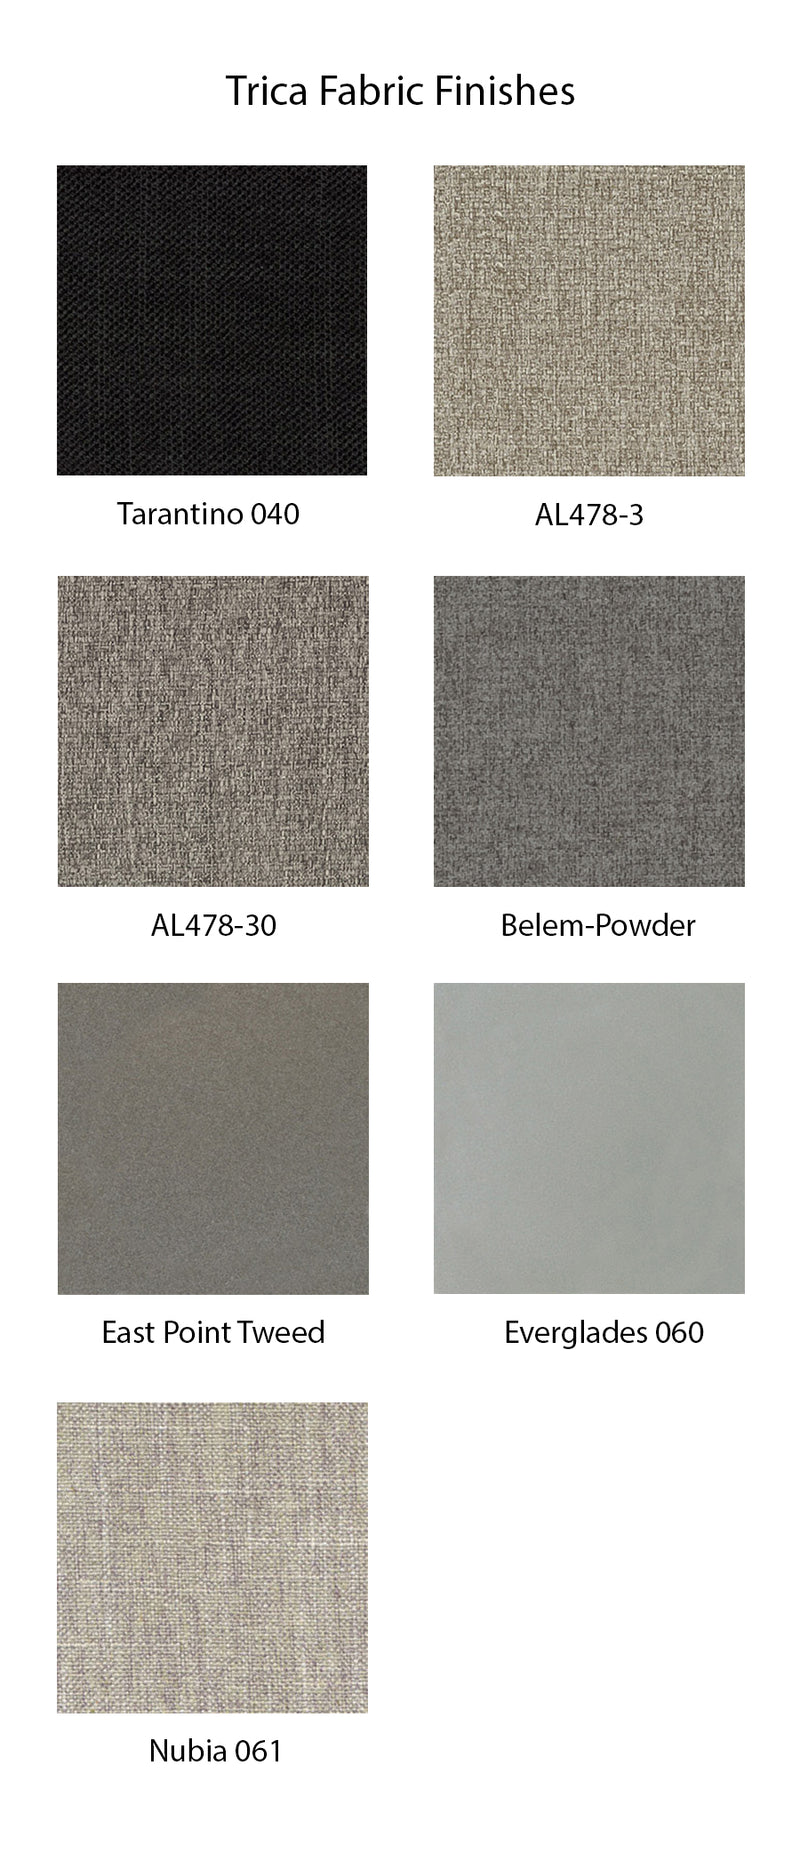 products/fabric-finishes-trica_8c998056-a774-4450-b8eb-5d1d9aab87f5.jpg